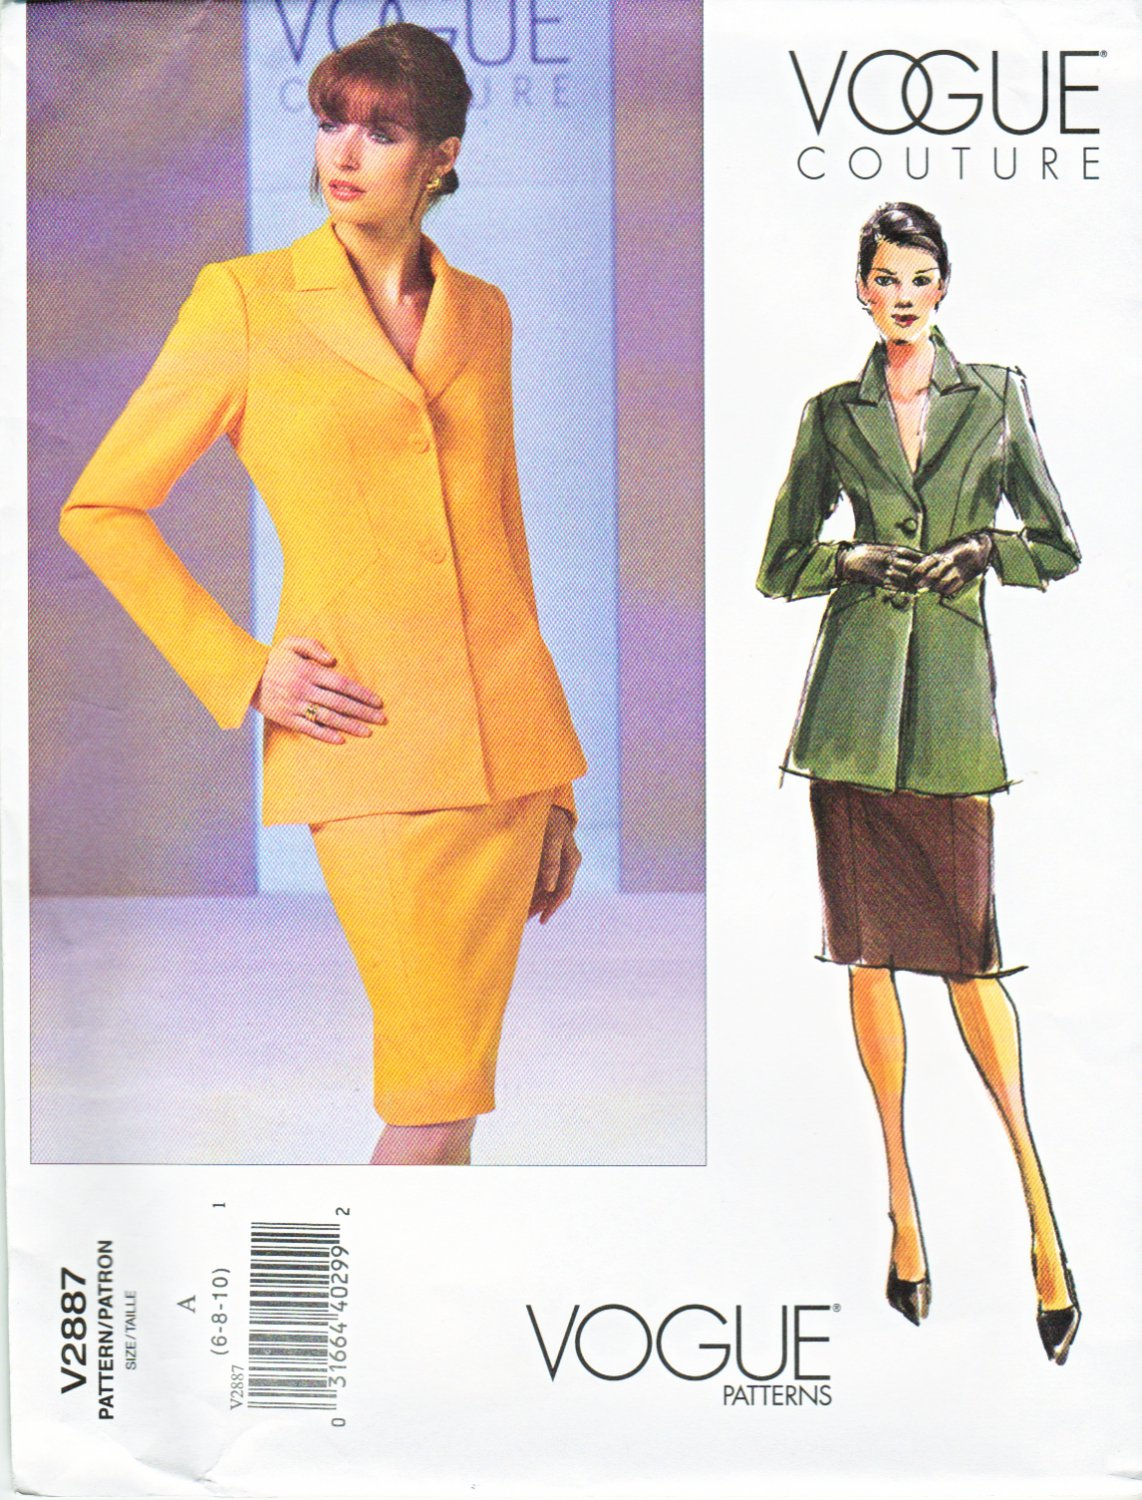 Vogue Sewing Pattern 2887 Misses Size 6-8-10 Couture Lined Jacket Skirt Suit